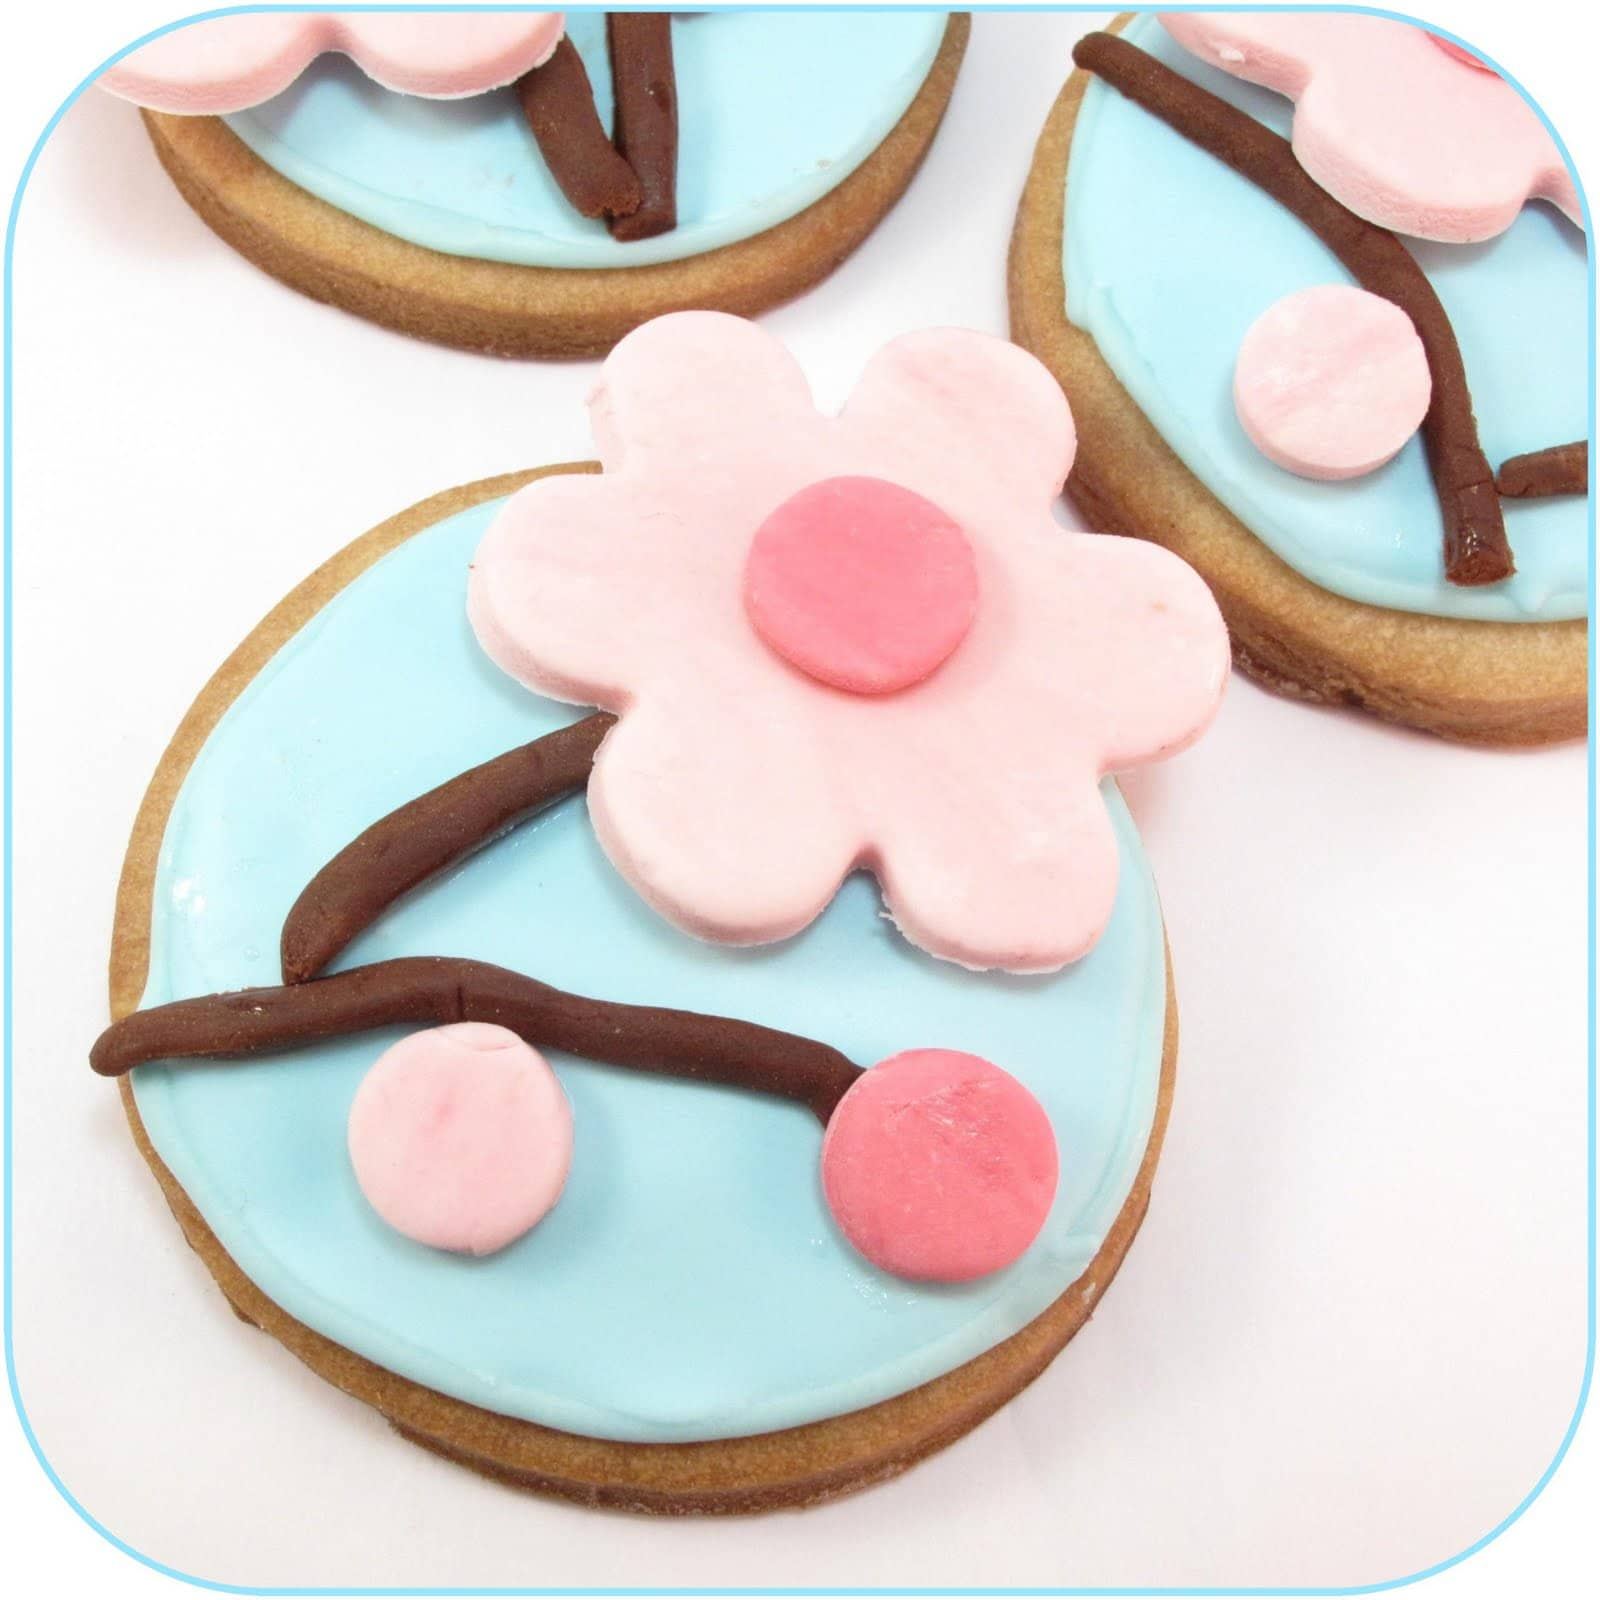 Decorated Round Cookies Bake Cookies Using The Round